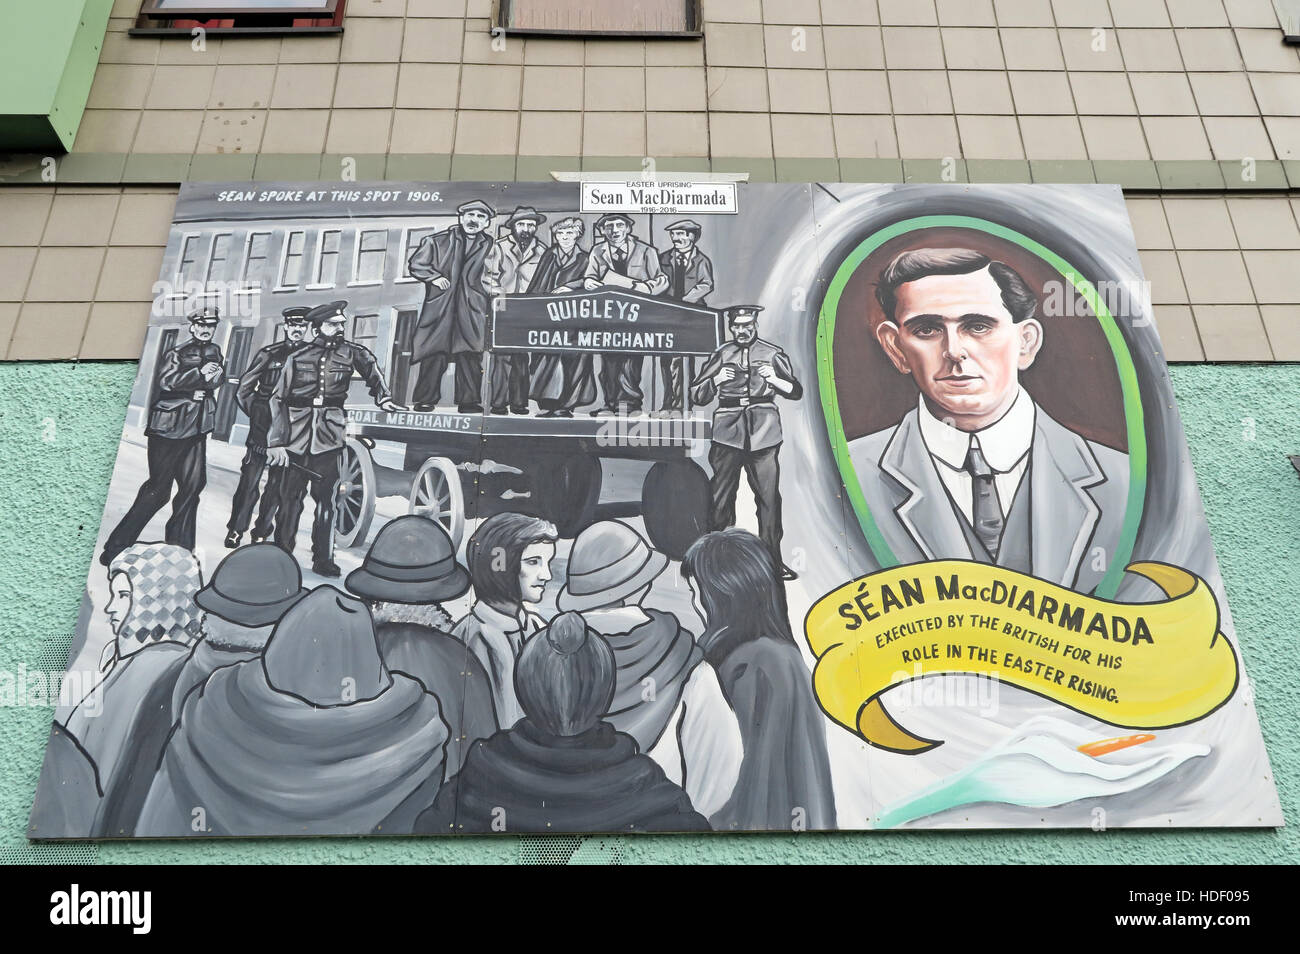 Road,painting,graffiti,resistance,IRA,peace,Northern Ireland,NI,UK,St,street,Eire,Irish,Republic,Irish Republic,conflict,Irish Republican Army,Political Change,Sean MacDiarmada,Sean,MacDiarmada,executed,by the,British,for,Easter Rising,Quigleys,coal,merchants,merchant,GoTonySmith,@HotpixUK,Tony,Smith,UK,GB,Great,Britain,United,Kingdom,Irish,British,Ireland,problem,with,problem with,issue with,NI,Northern,Northern Ireland,Belfast,City,Centre,Art,Artists,the,troubles,The Troubles,Good Friday Agreement,Peace,honour,painting,wall,walls,tribute,republicanism,Fight,Justice,West,Beal,feirste,martyrs,social,tour,tourism,tourists,urban,six,counties,6,backdrop,county,Antrim,occupation,good,Friday,agreement,peace,reconciliation,IRA,terror,terrorists,genocide,catholic,community,catholics,Buy Pictures of,Buy Images Of,Images of,Stock Images,Tony Smith,United Kingdom,Great Britain,British Isles,republican cause,Belfast Catholic Community